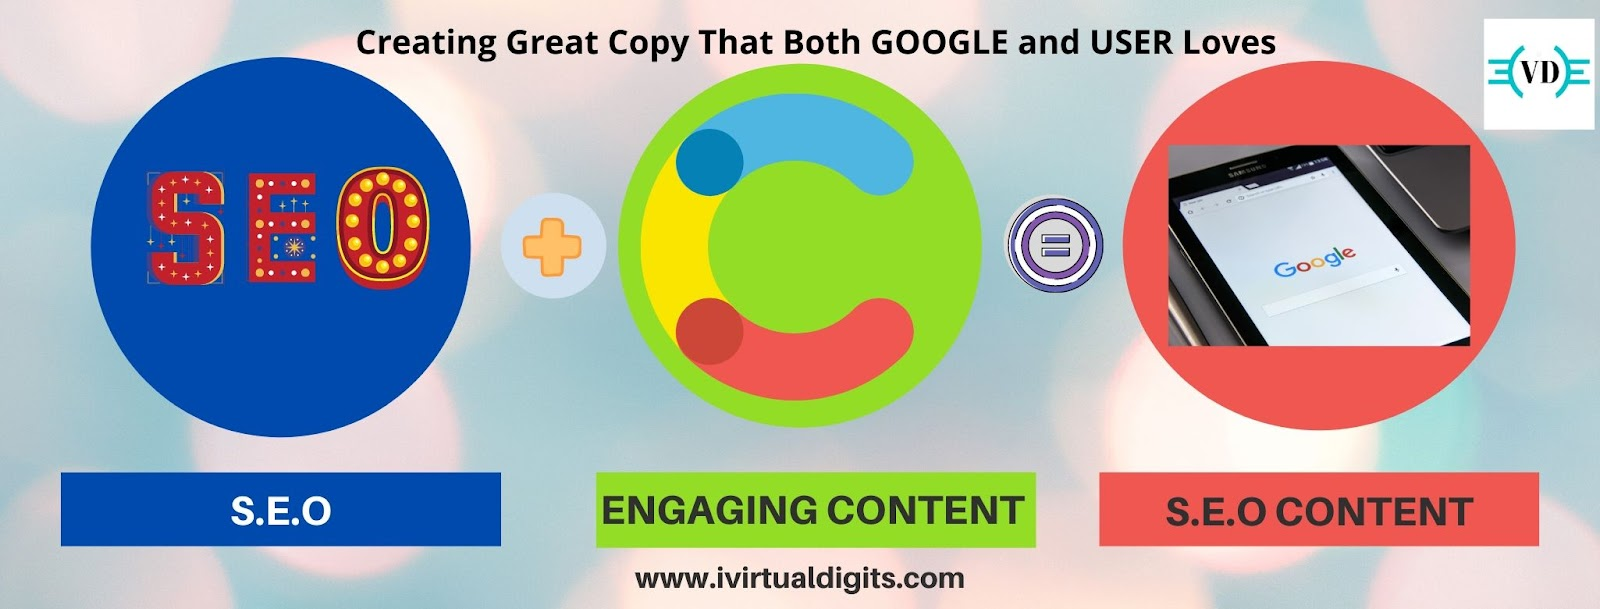 Create SEO Content which Google and Users Love